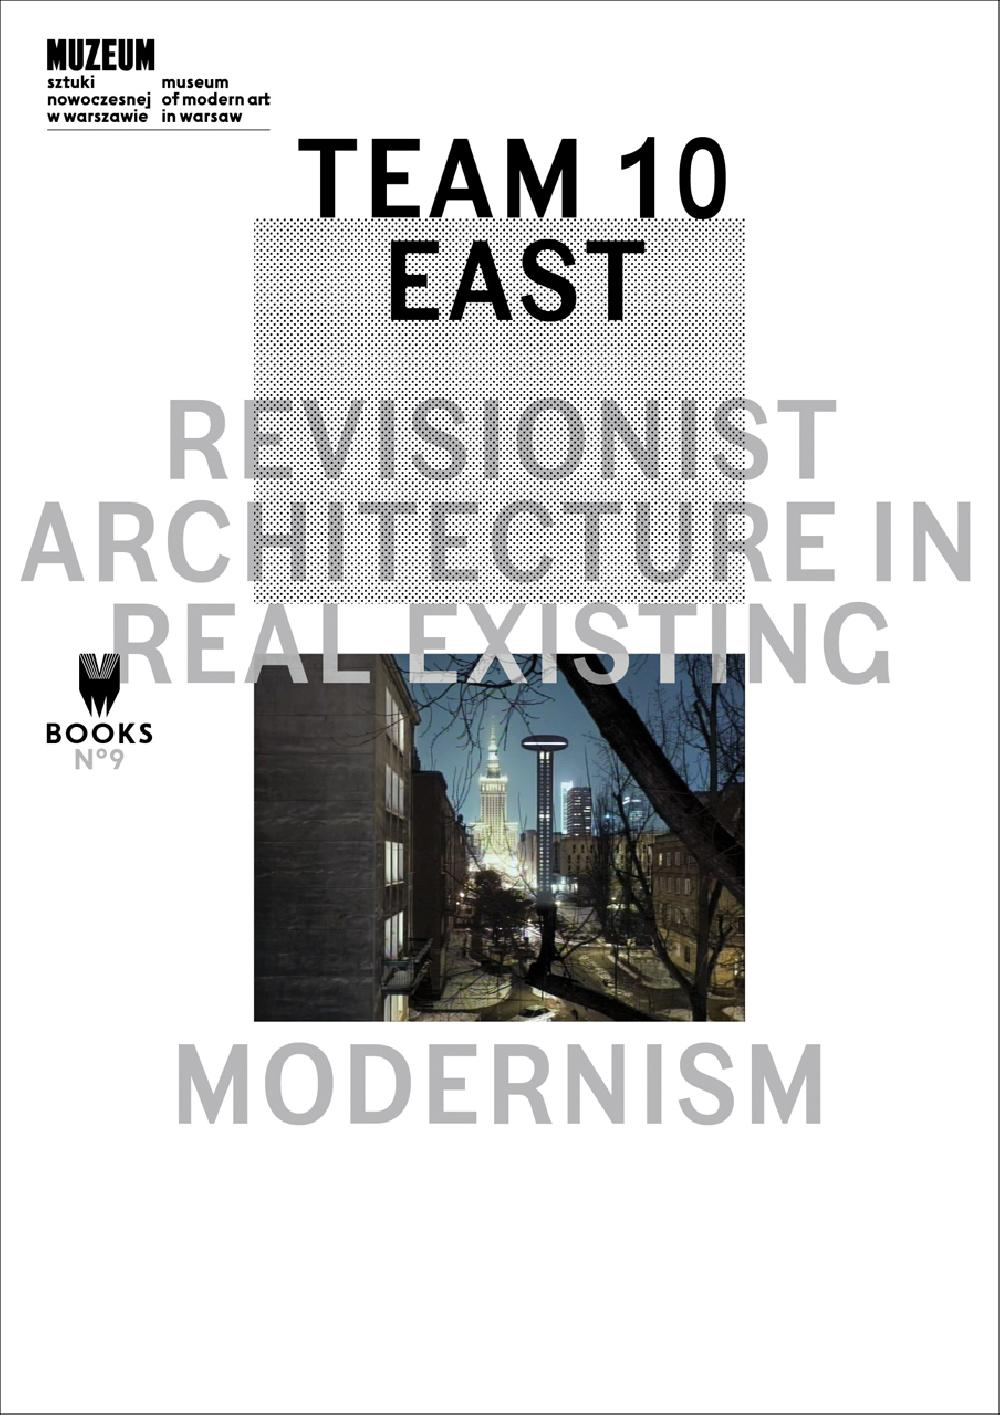 Team 10 East Revisionist architecture in real existing modernism